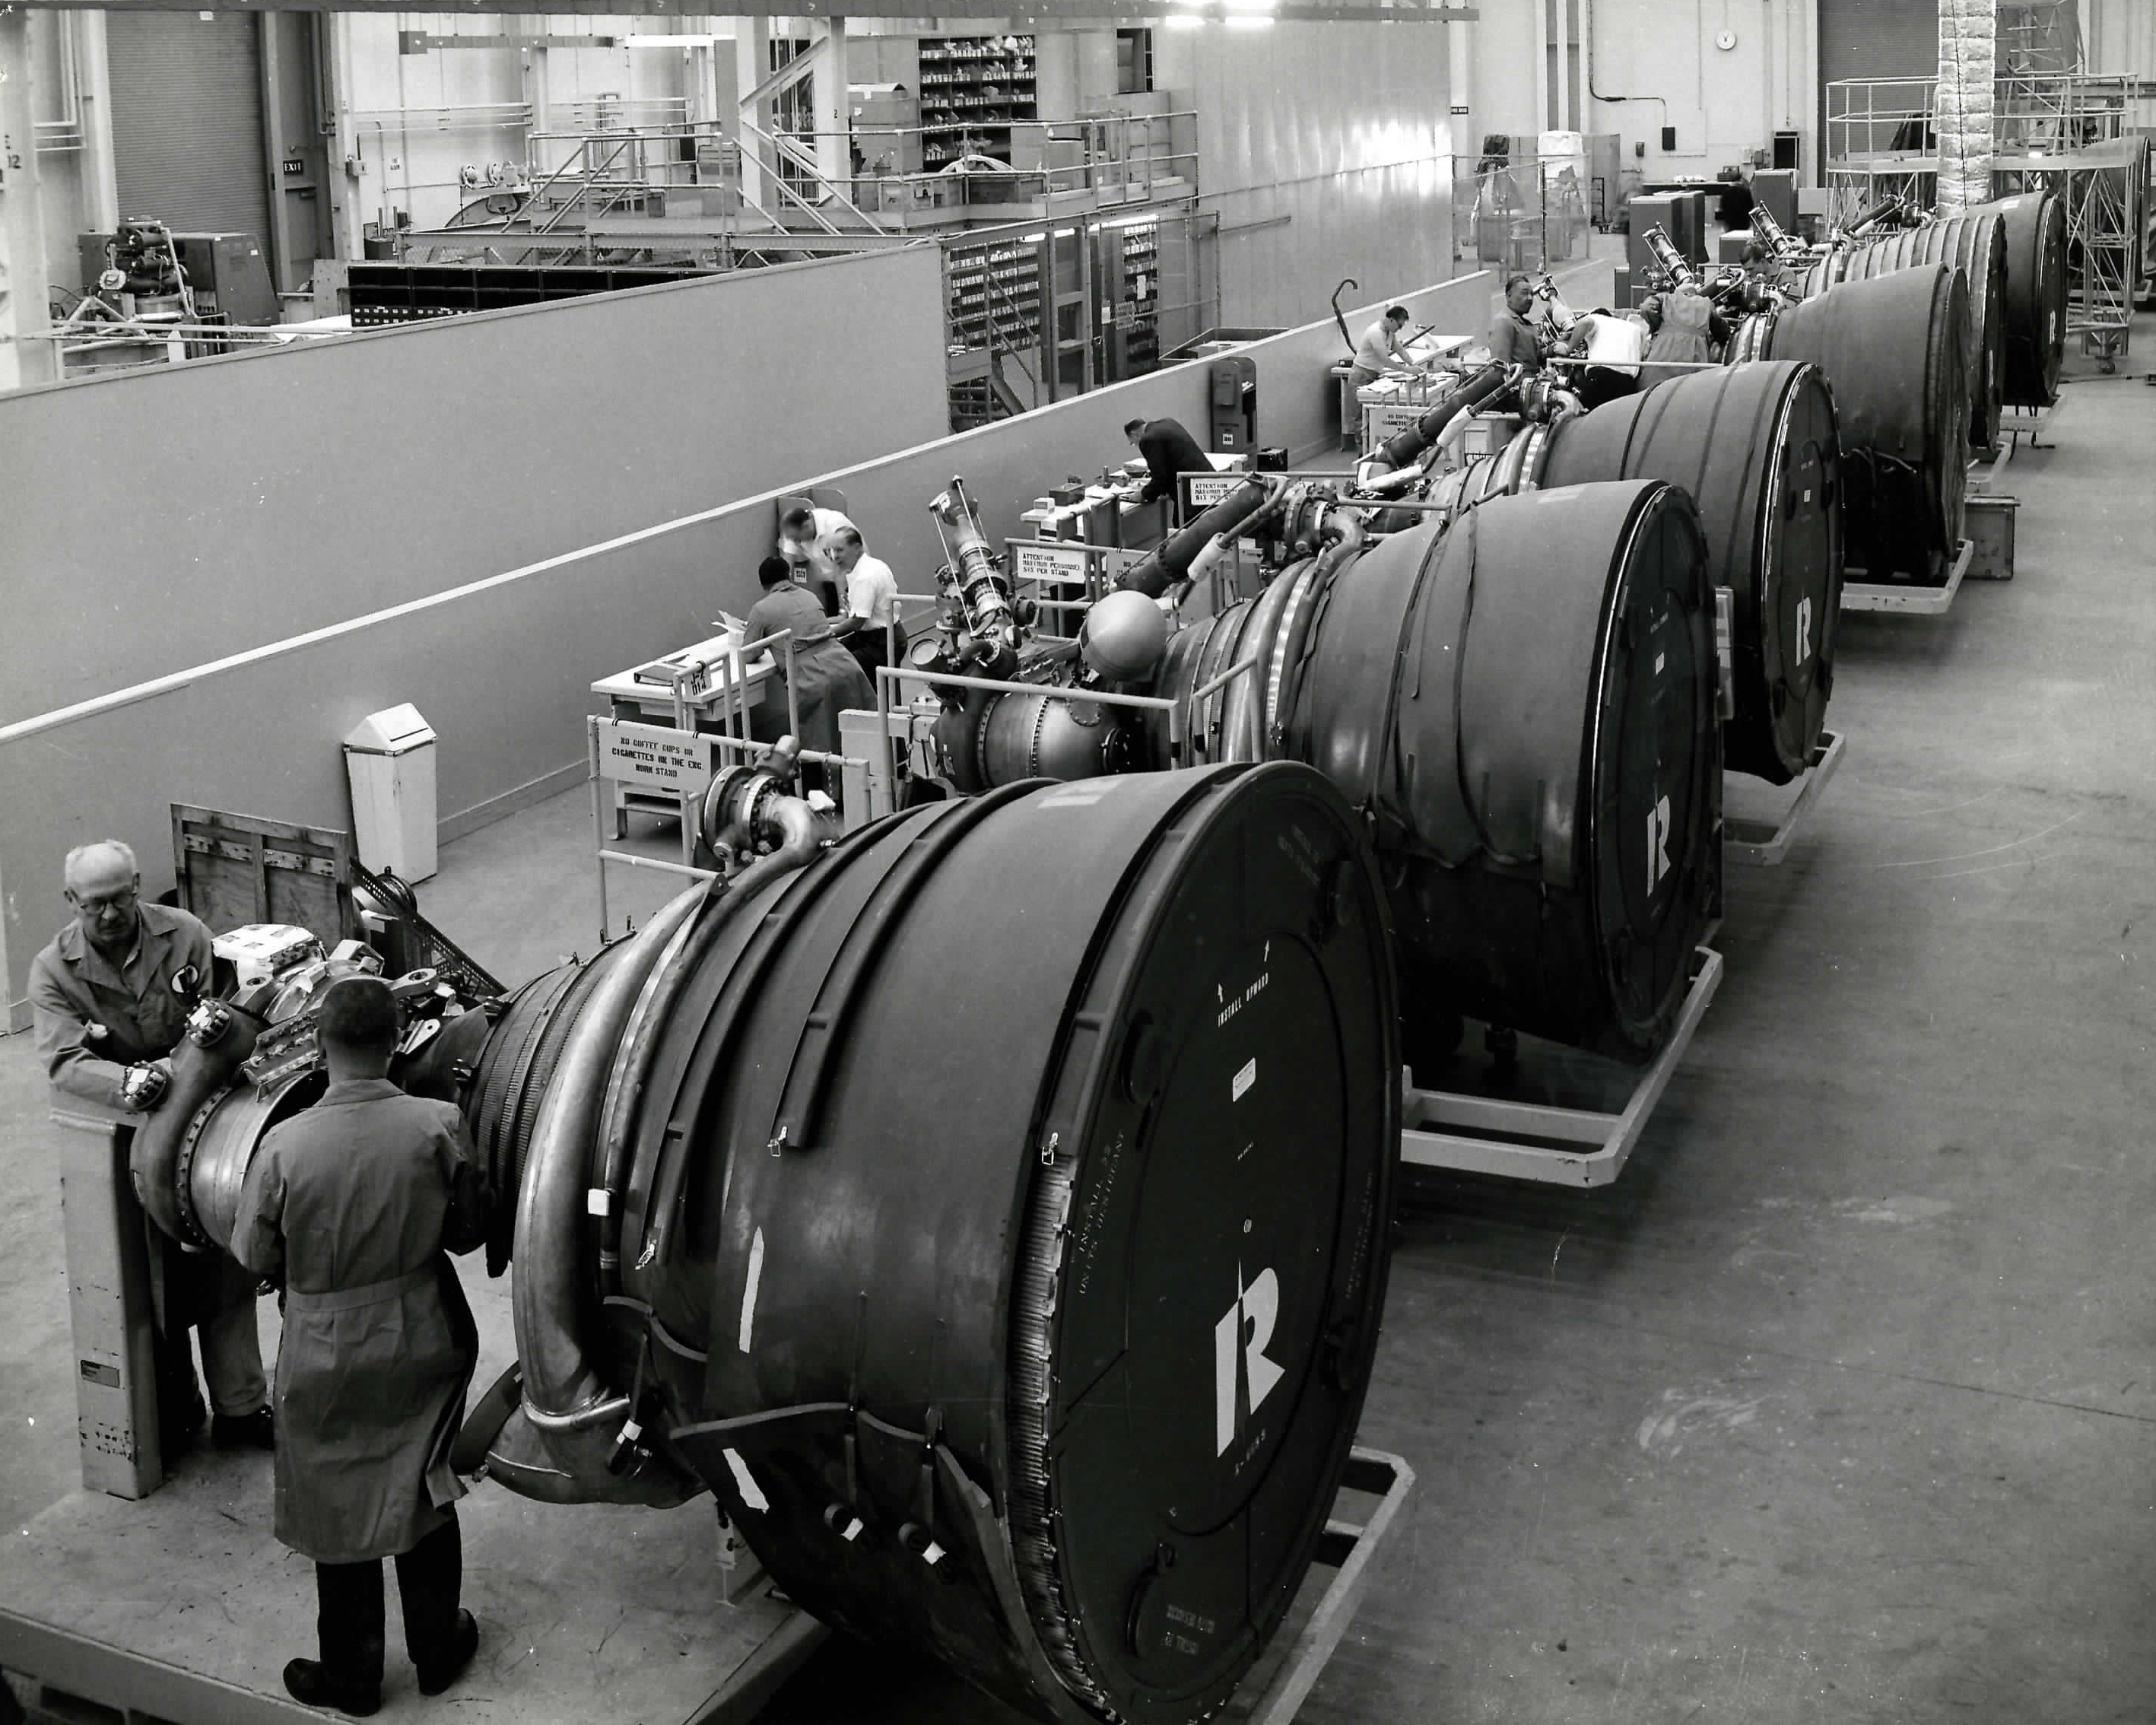 J-2 Assembly Line in Canoga Park – Archive photo of the J-2 assembly line at Aerojet Rocketdyne's Canoga Park facility. Six hydrogen-fueled J-2 rocket engines were used on the Saturn V to take humans to the moon.